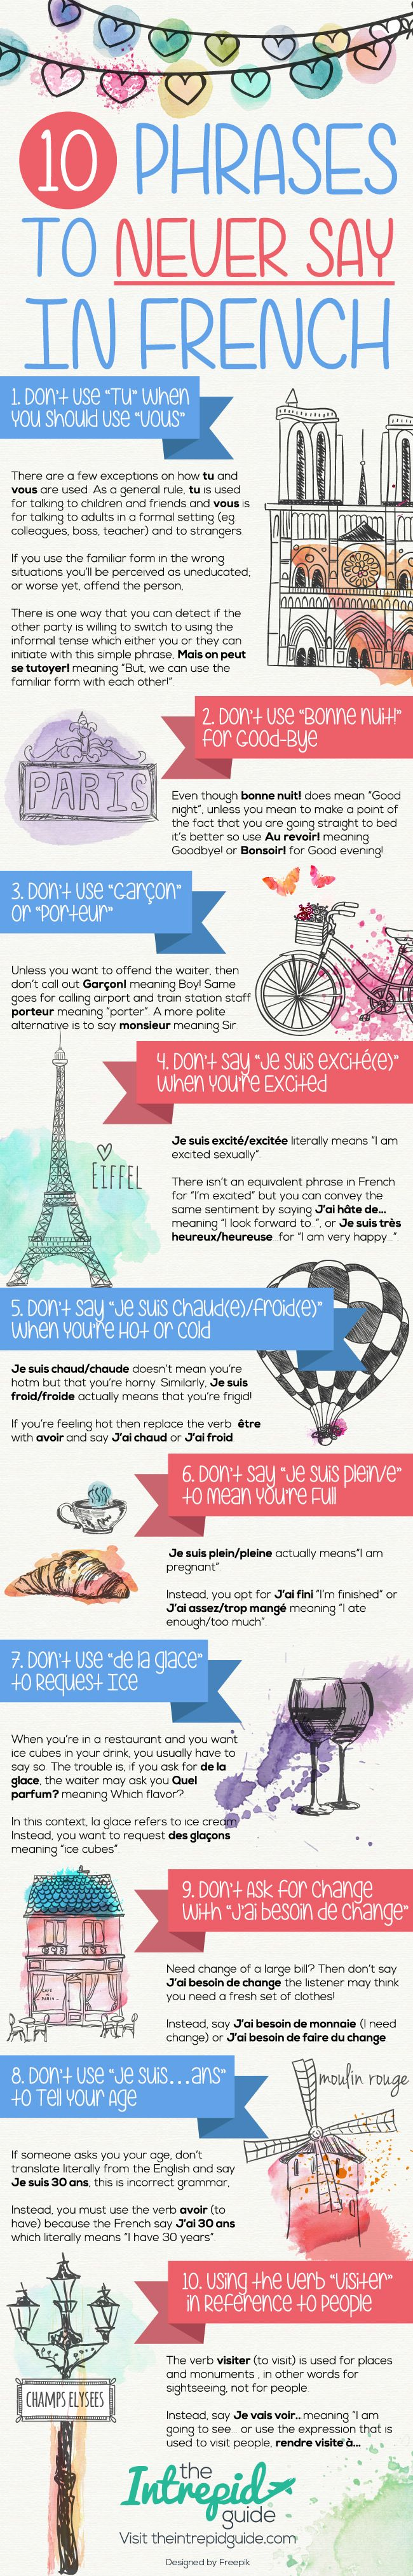 10 Phrases to Never Say in French